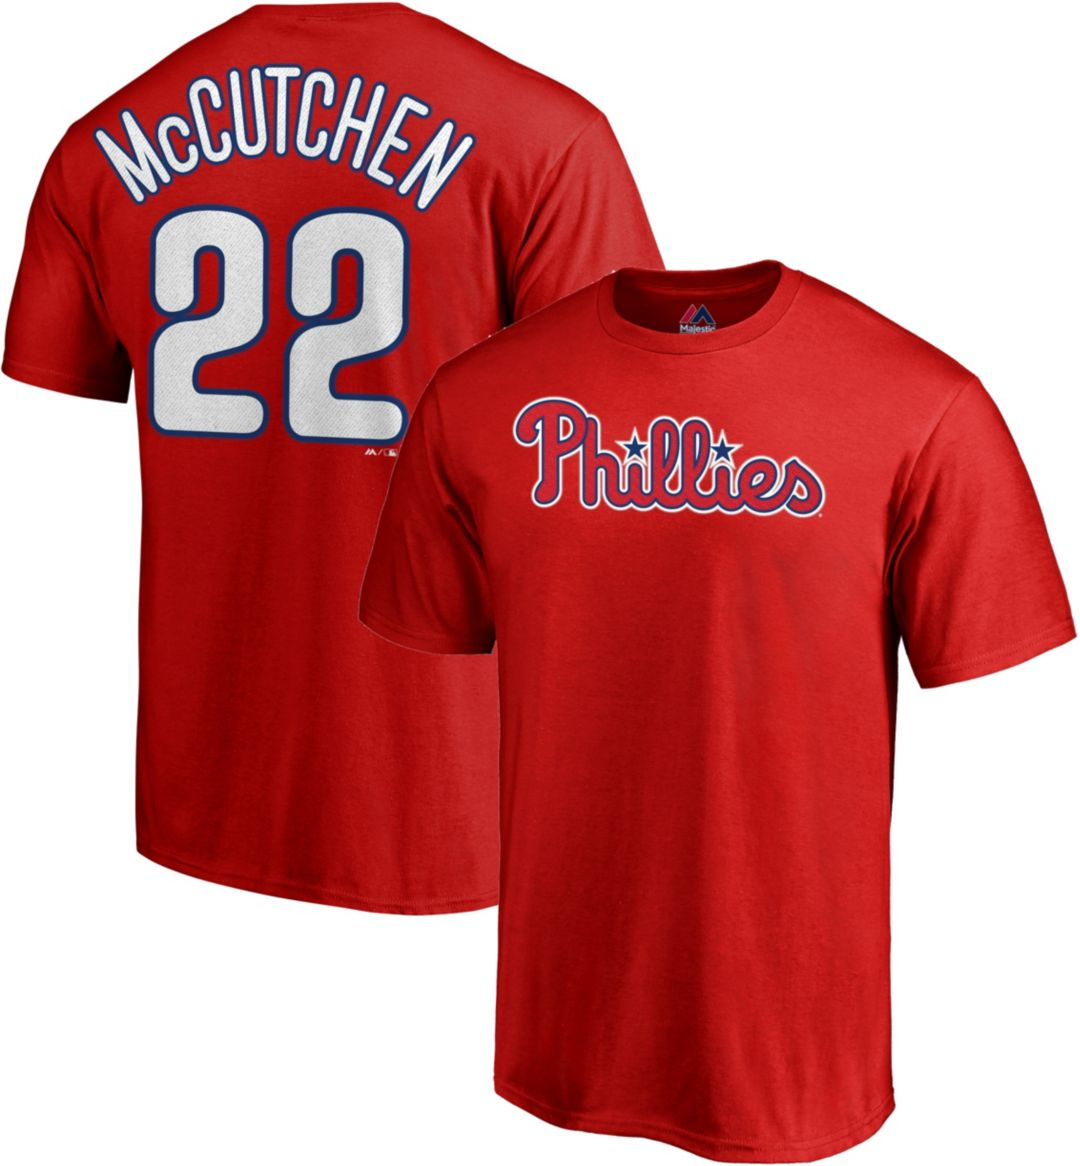 best service 3e714 1553e Majestic Men's Philadelphia Phillies Andrew McCutchen #22 Red T-Shirt